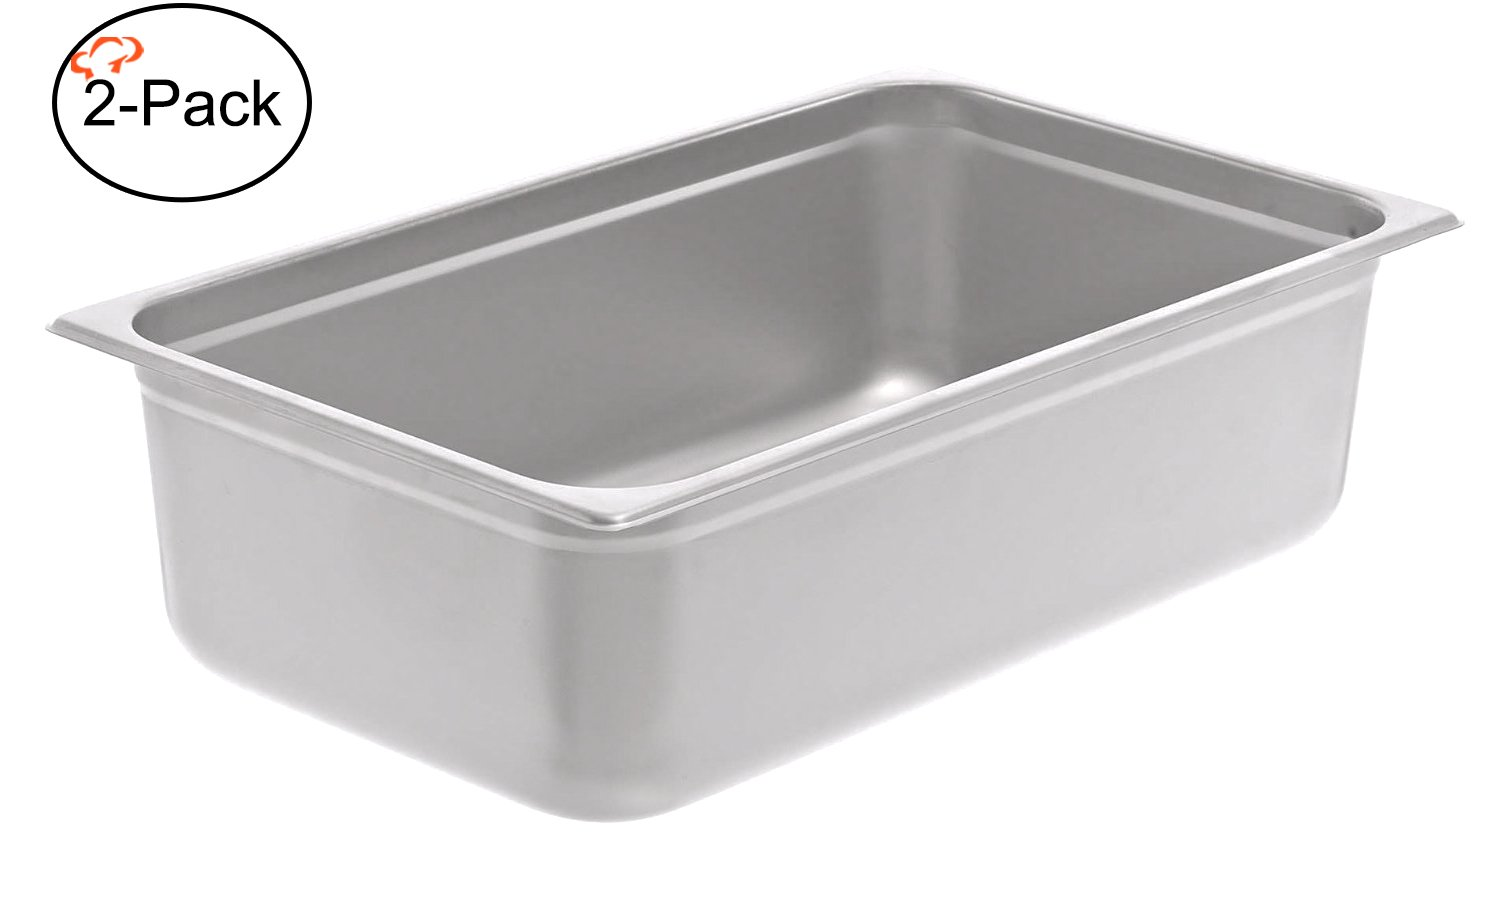 Tiger Chef 2-Pack 6-inch Full-Size Stainless Steel Anti-Jam Steam Table Pan, Hotel Pan